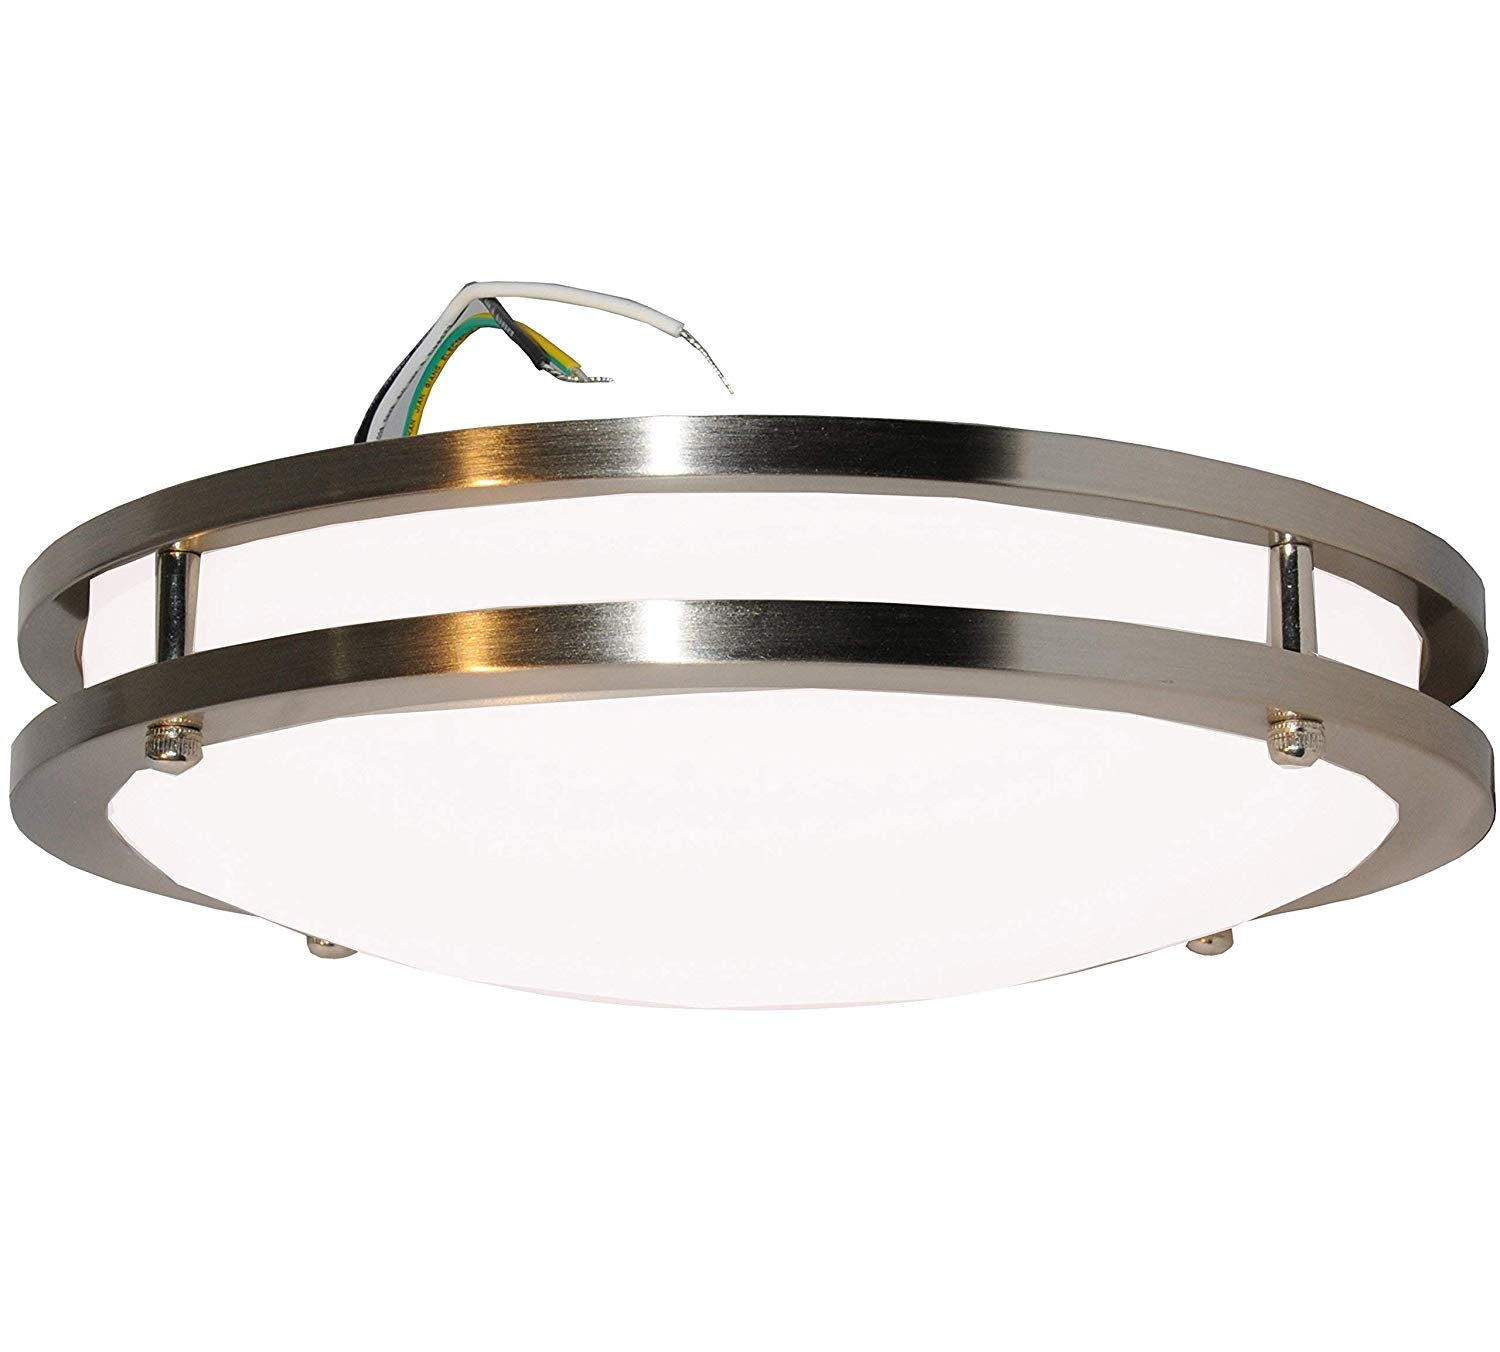 "5000K Daylight White Easy to Install 50,000 Hours Life 80/% More efficient UL /& Energy Star 14/"" inch Sleeklighting Modern Flush Mount Dimmable LED Ceiling Light Dimmable 1400 Lumens 20Watt"